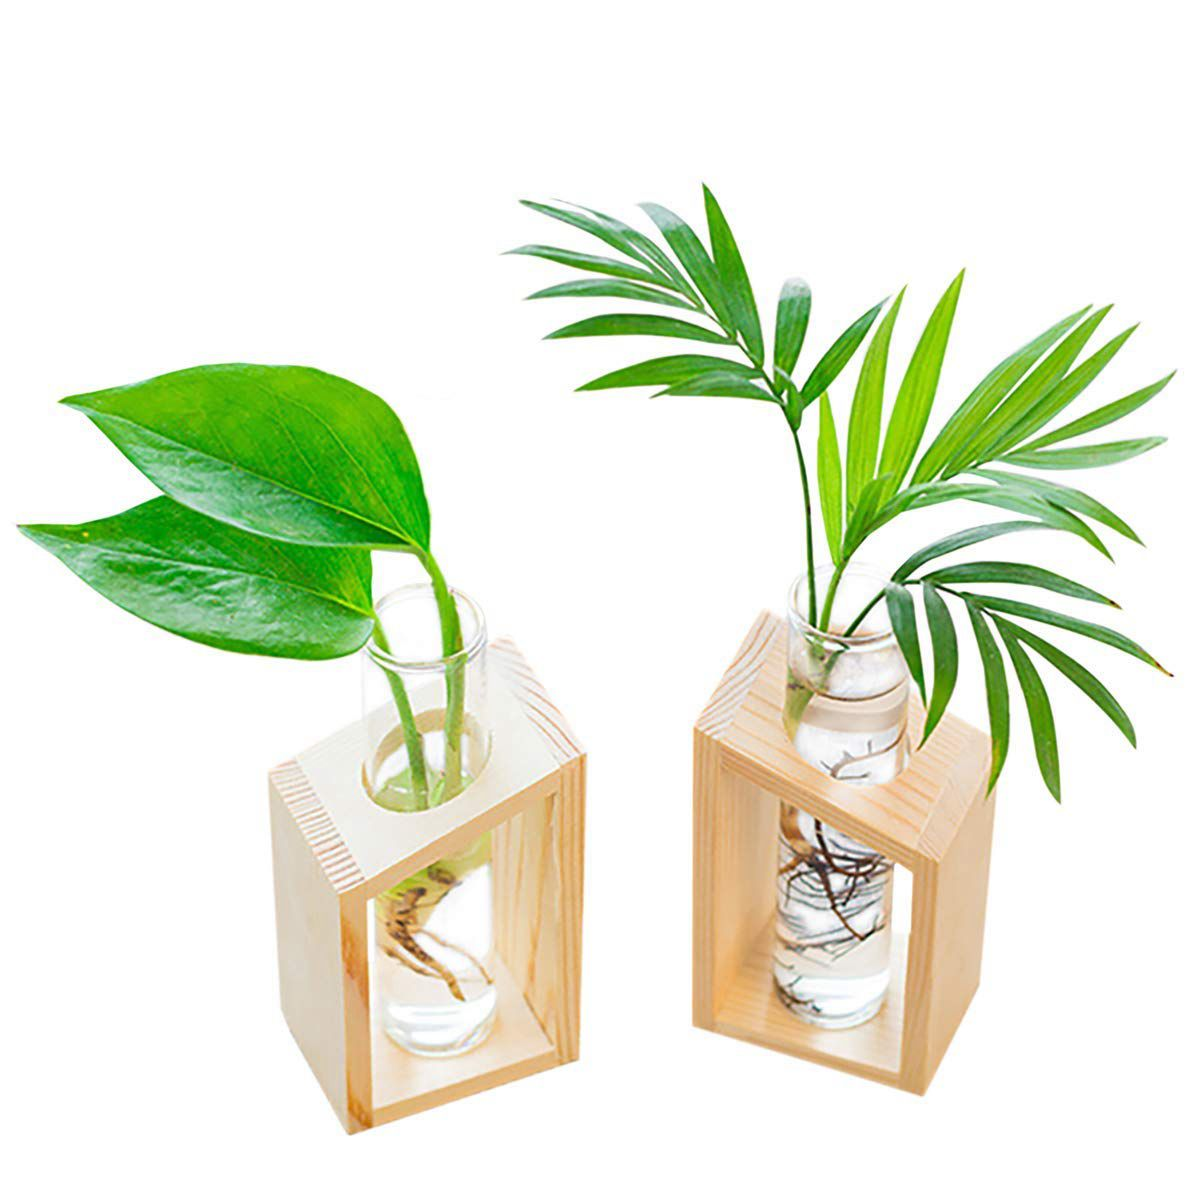 Botique-Crystal Glass Test Tube Vase in Wooden Stand Flower Pots for Hydroponic Plants Home Garden Decoration